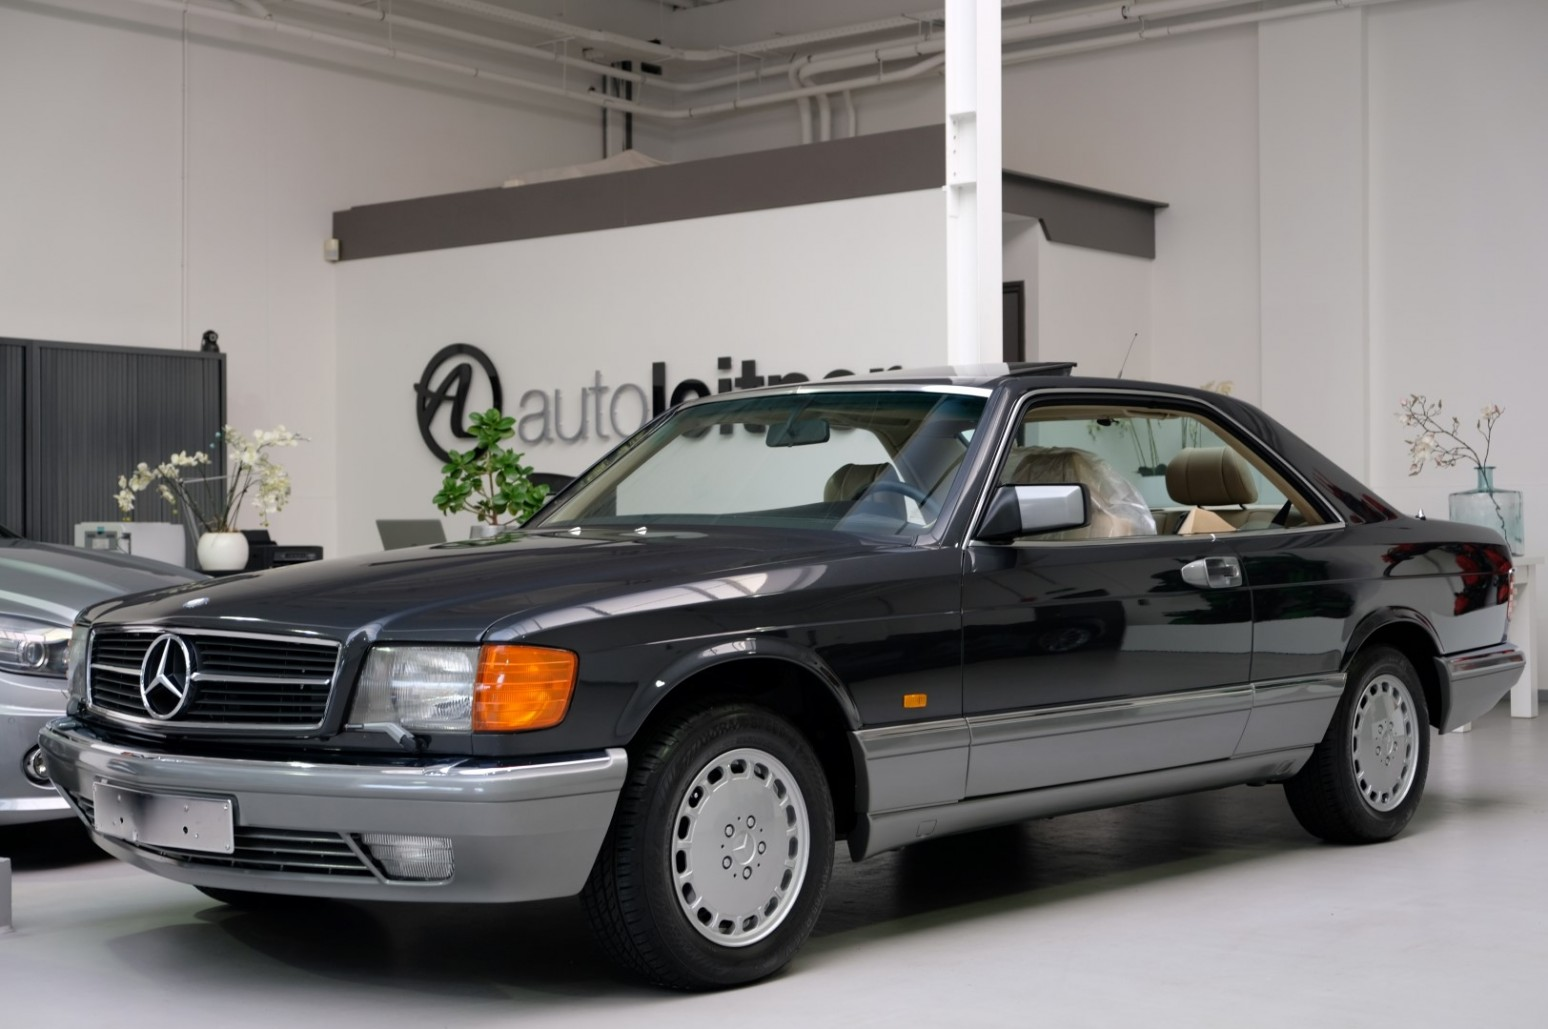 1987 mercedes 420 sec w126 blauwzwart metallic zum kauf. Black Bedroom Furniture Sets. Home Design Ideas